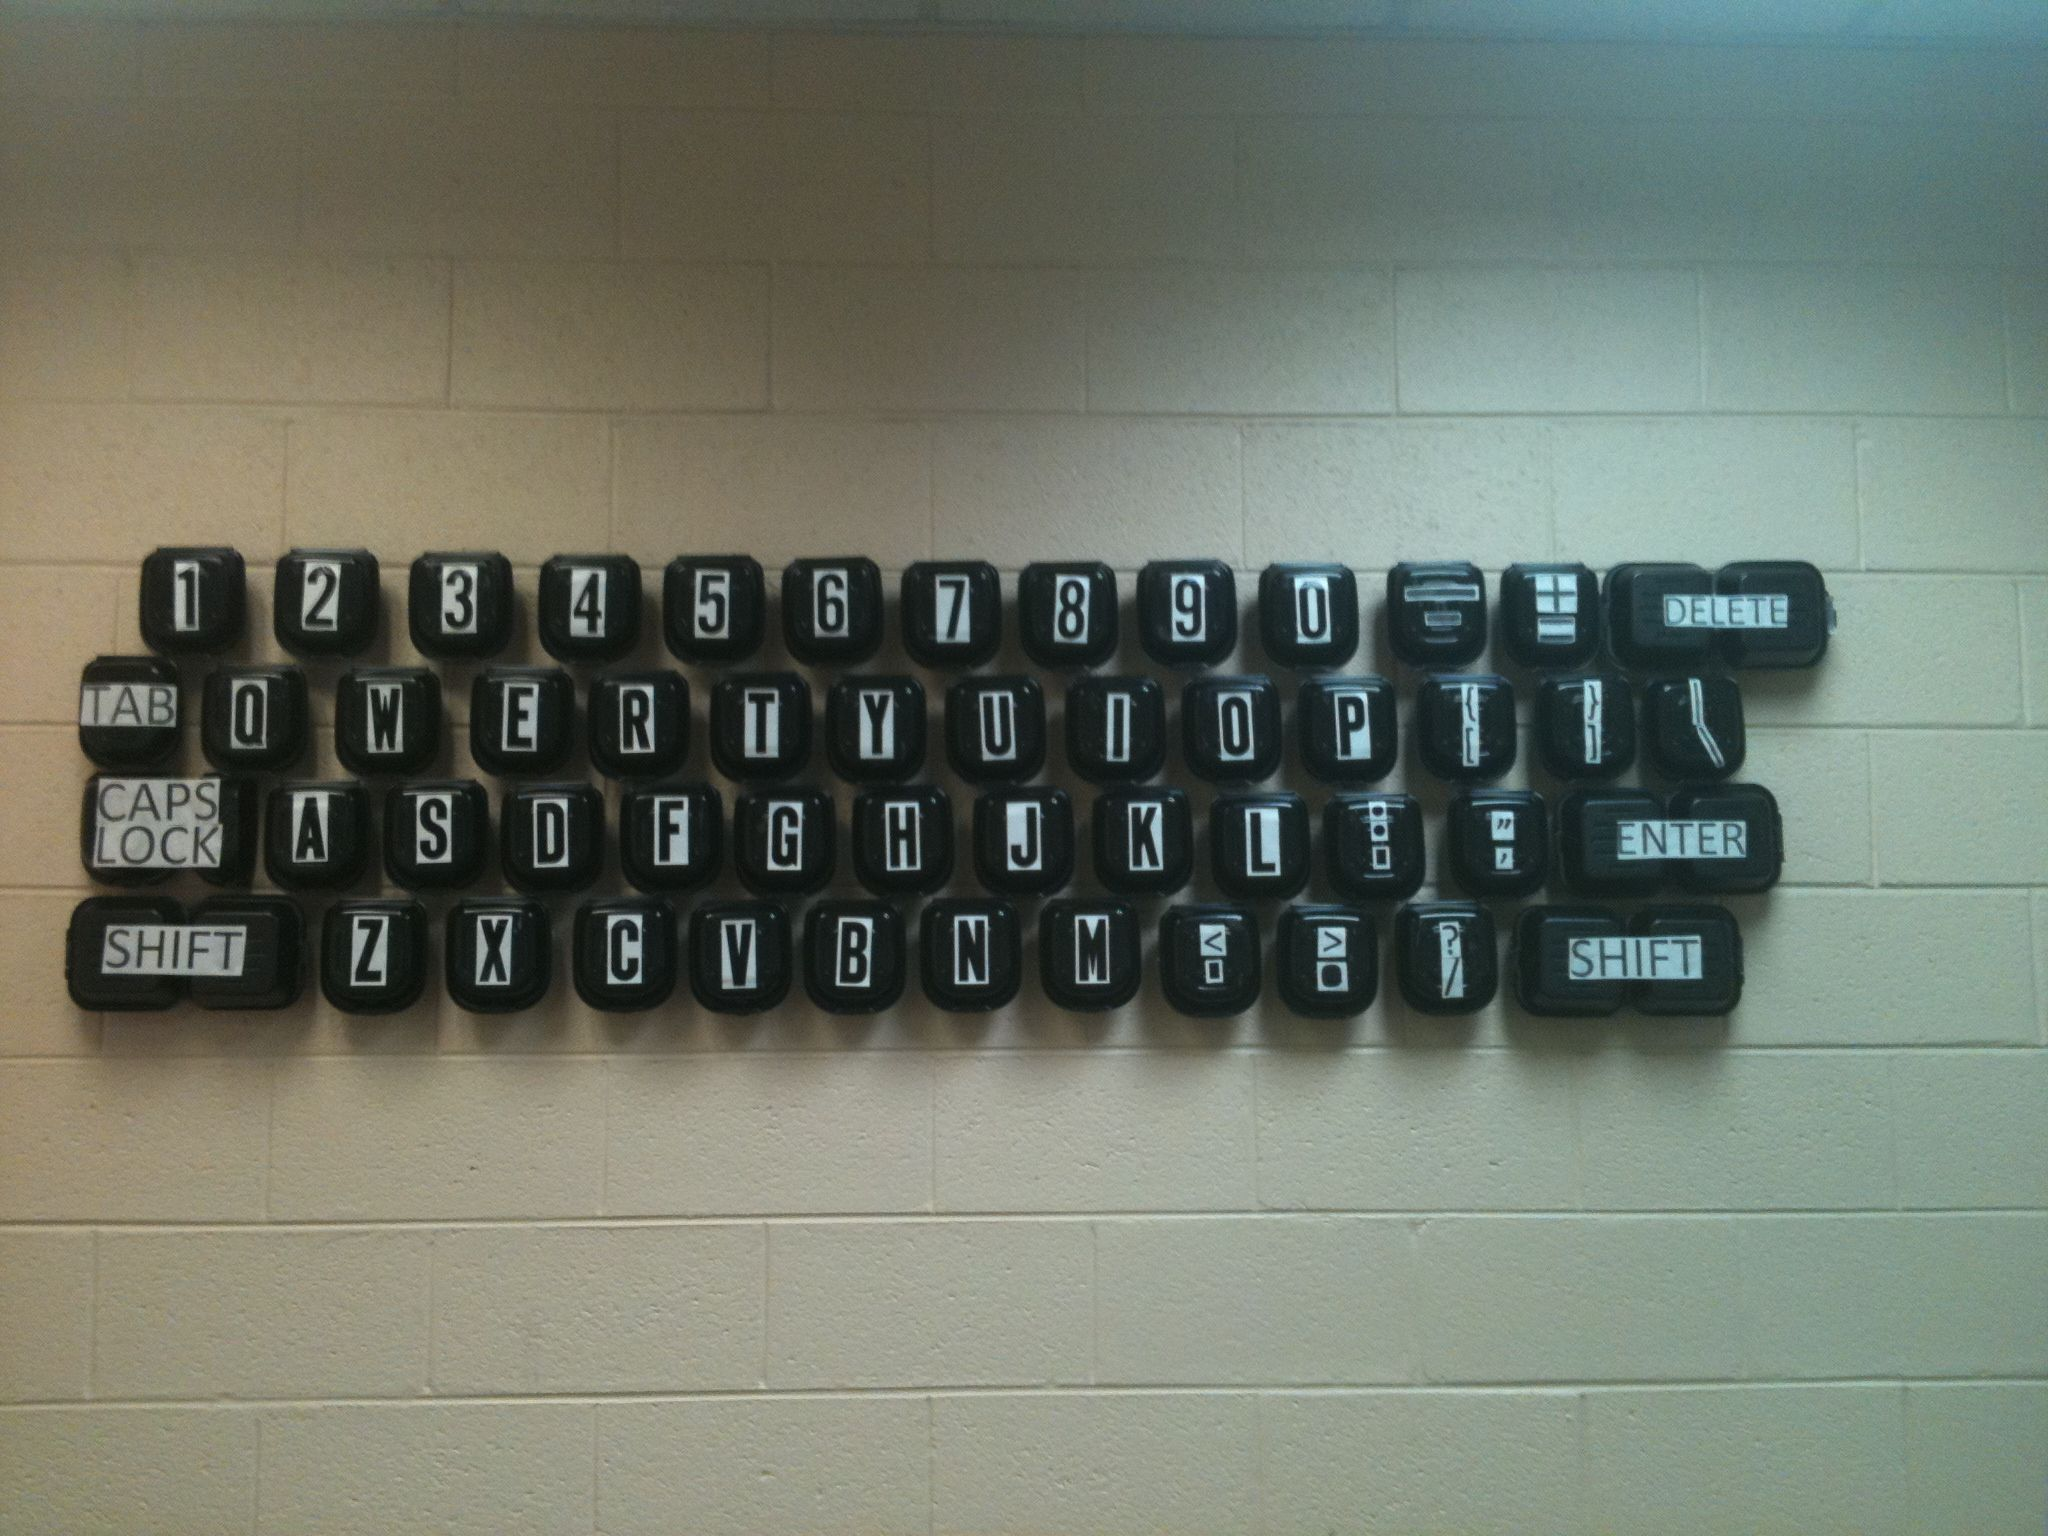 best ideas about teaching computer skills i don t teach computer skills but this looks great other pinene said i teach computer technology and made this wall size keyboard for my classroom out